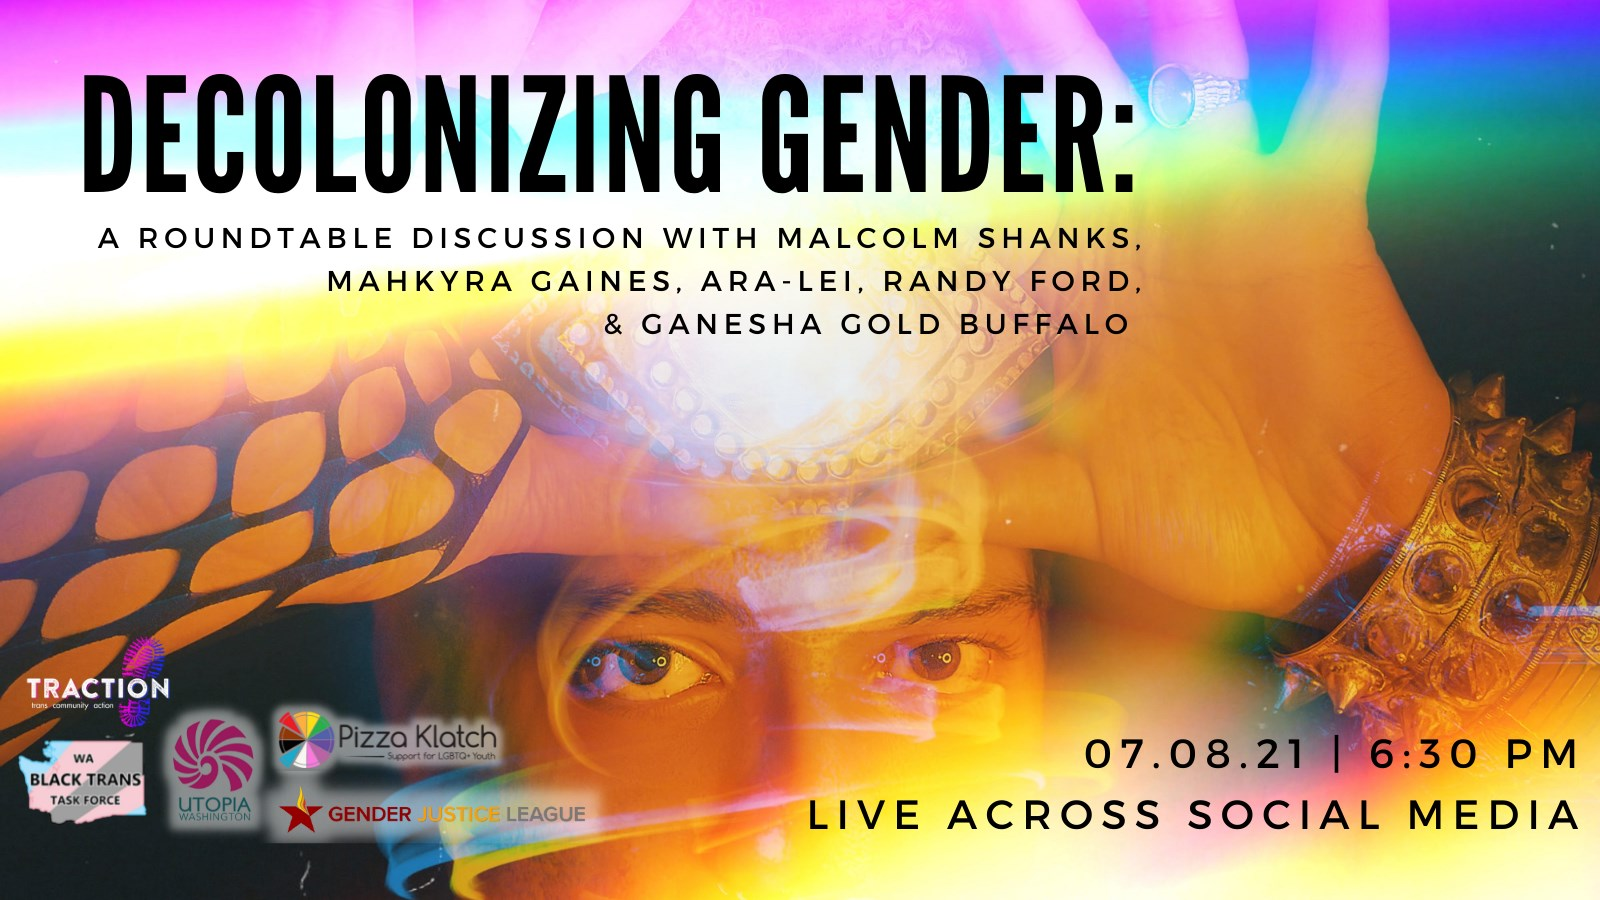 Decolonizing Gender, Part II: A Roundtable Discussion